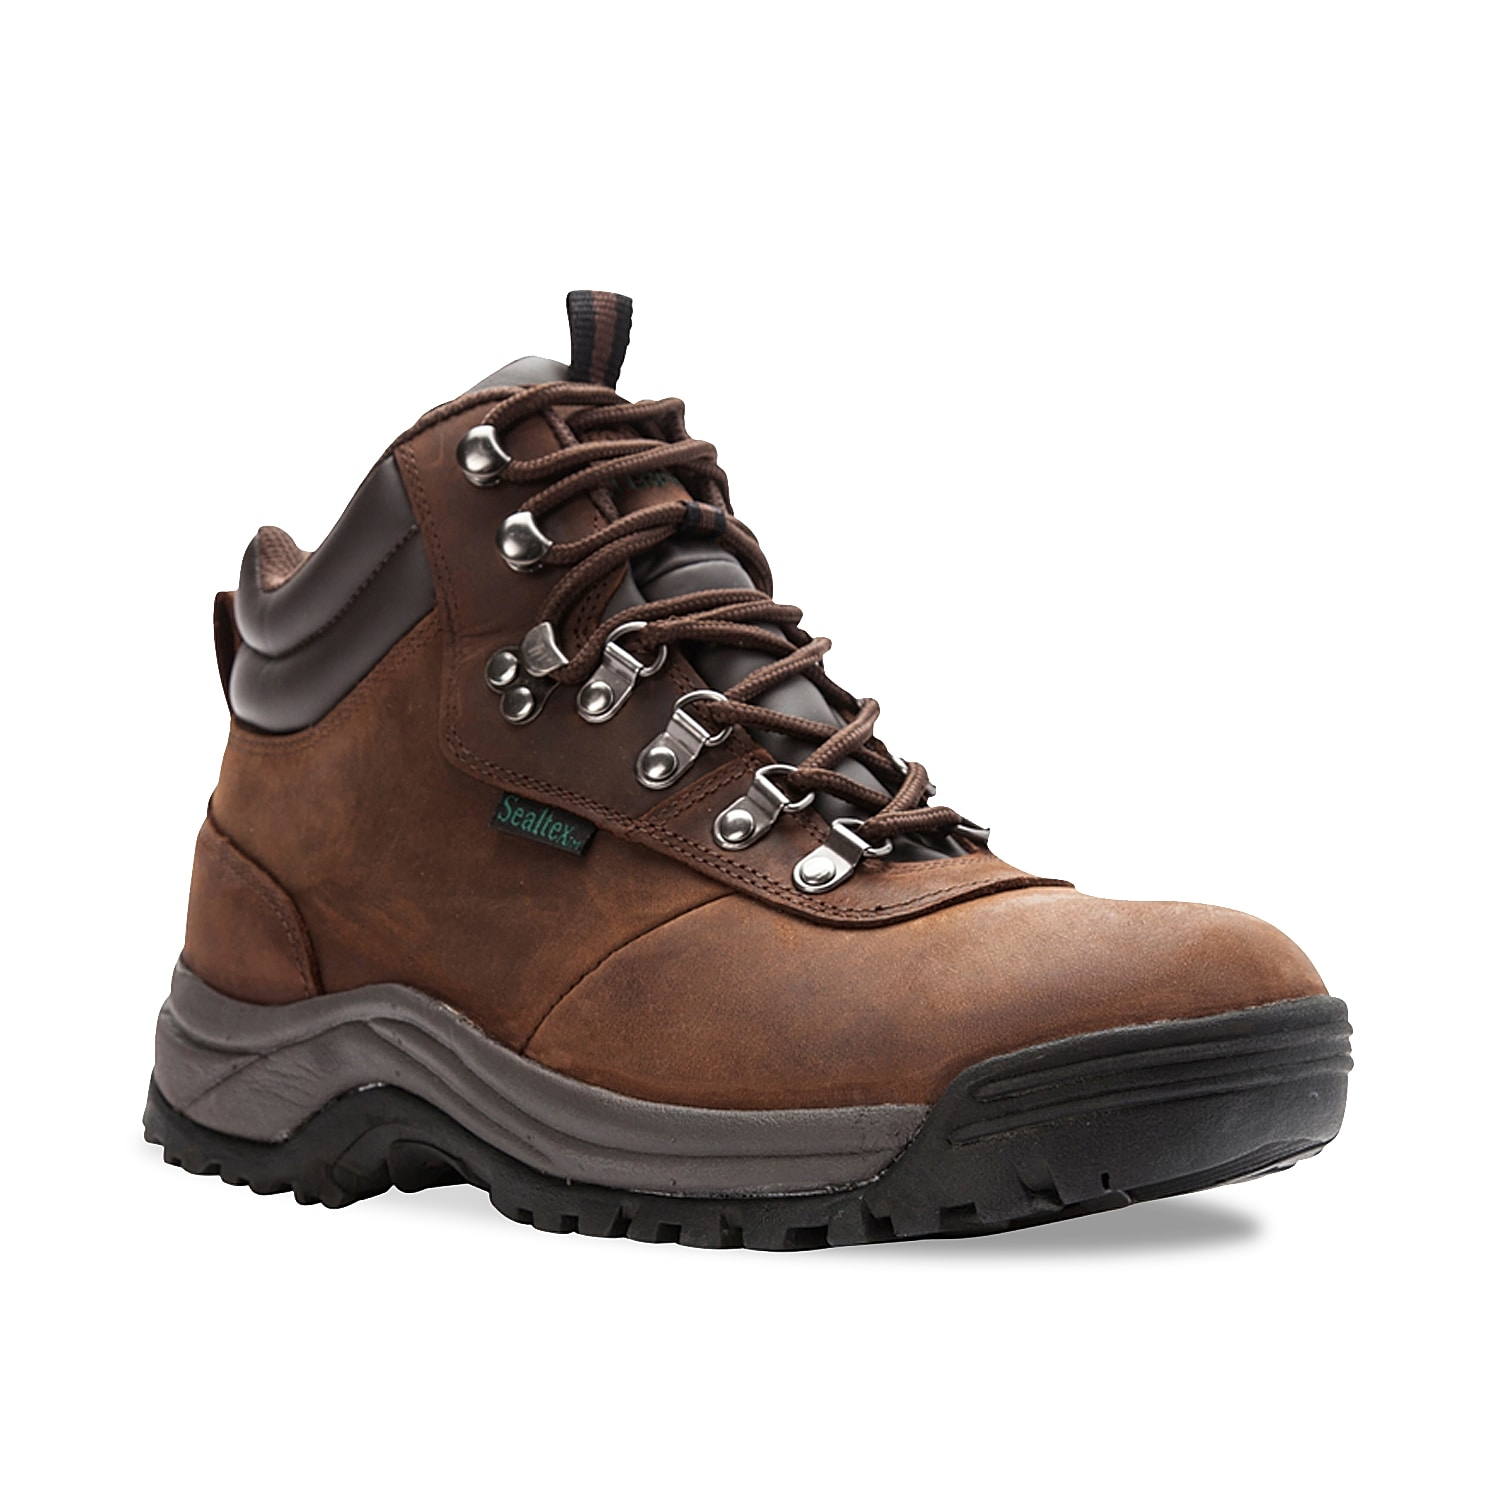 The Propet Cliff Walker boot is a versatile boot can go from work, to trail to casual weekend adventure. The speed lacing closure is designed to make for easy on and off, while the Sealtex® waterproof bootie construction means your feet will stay warm and dry.